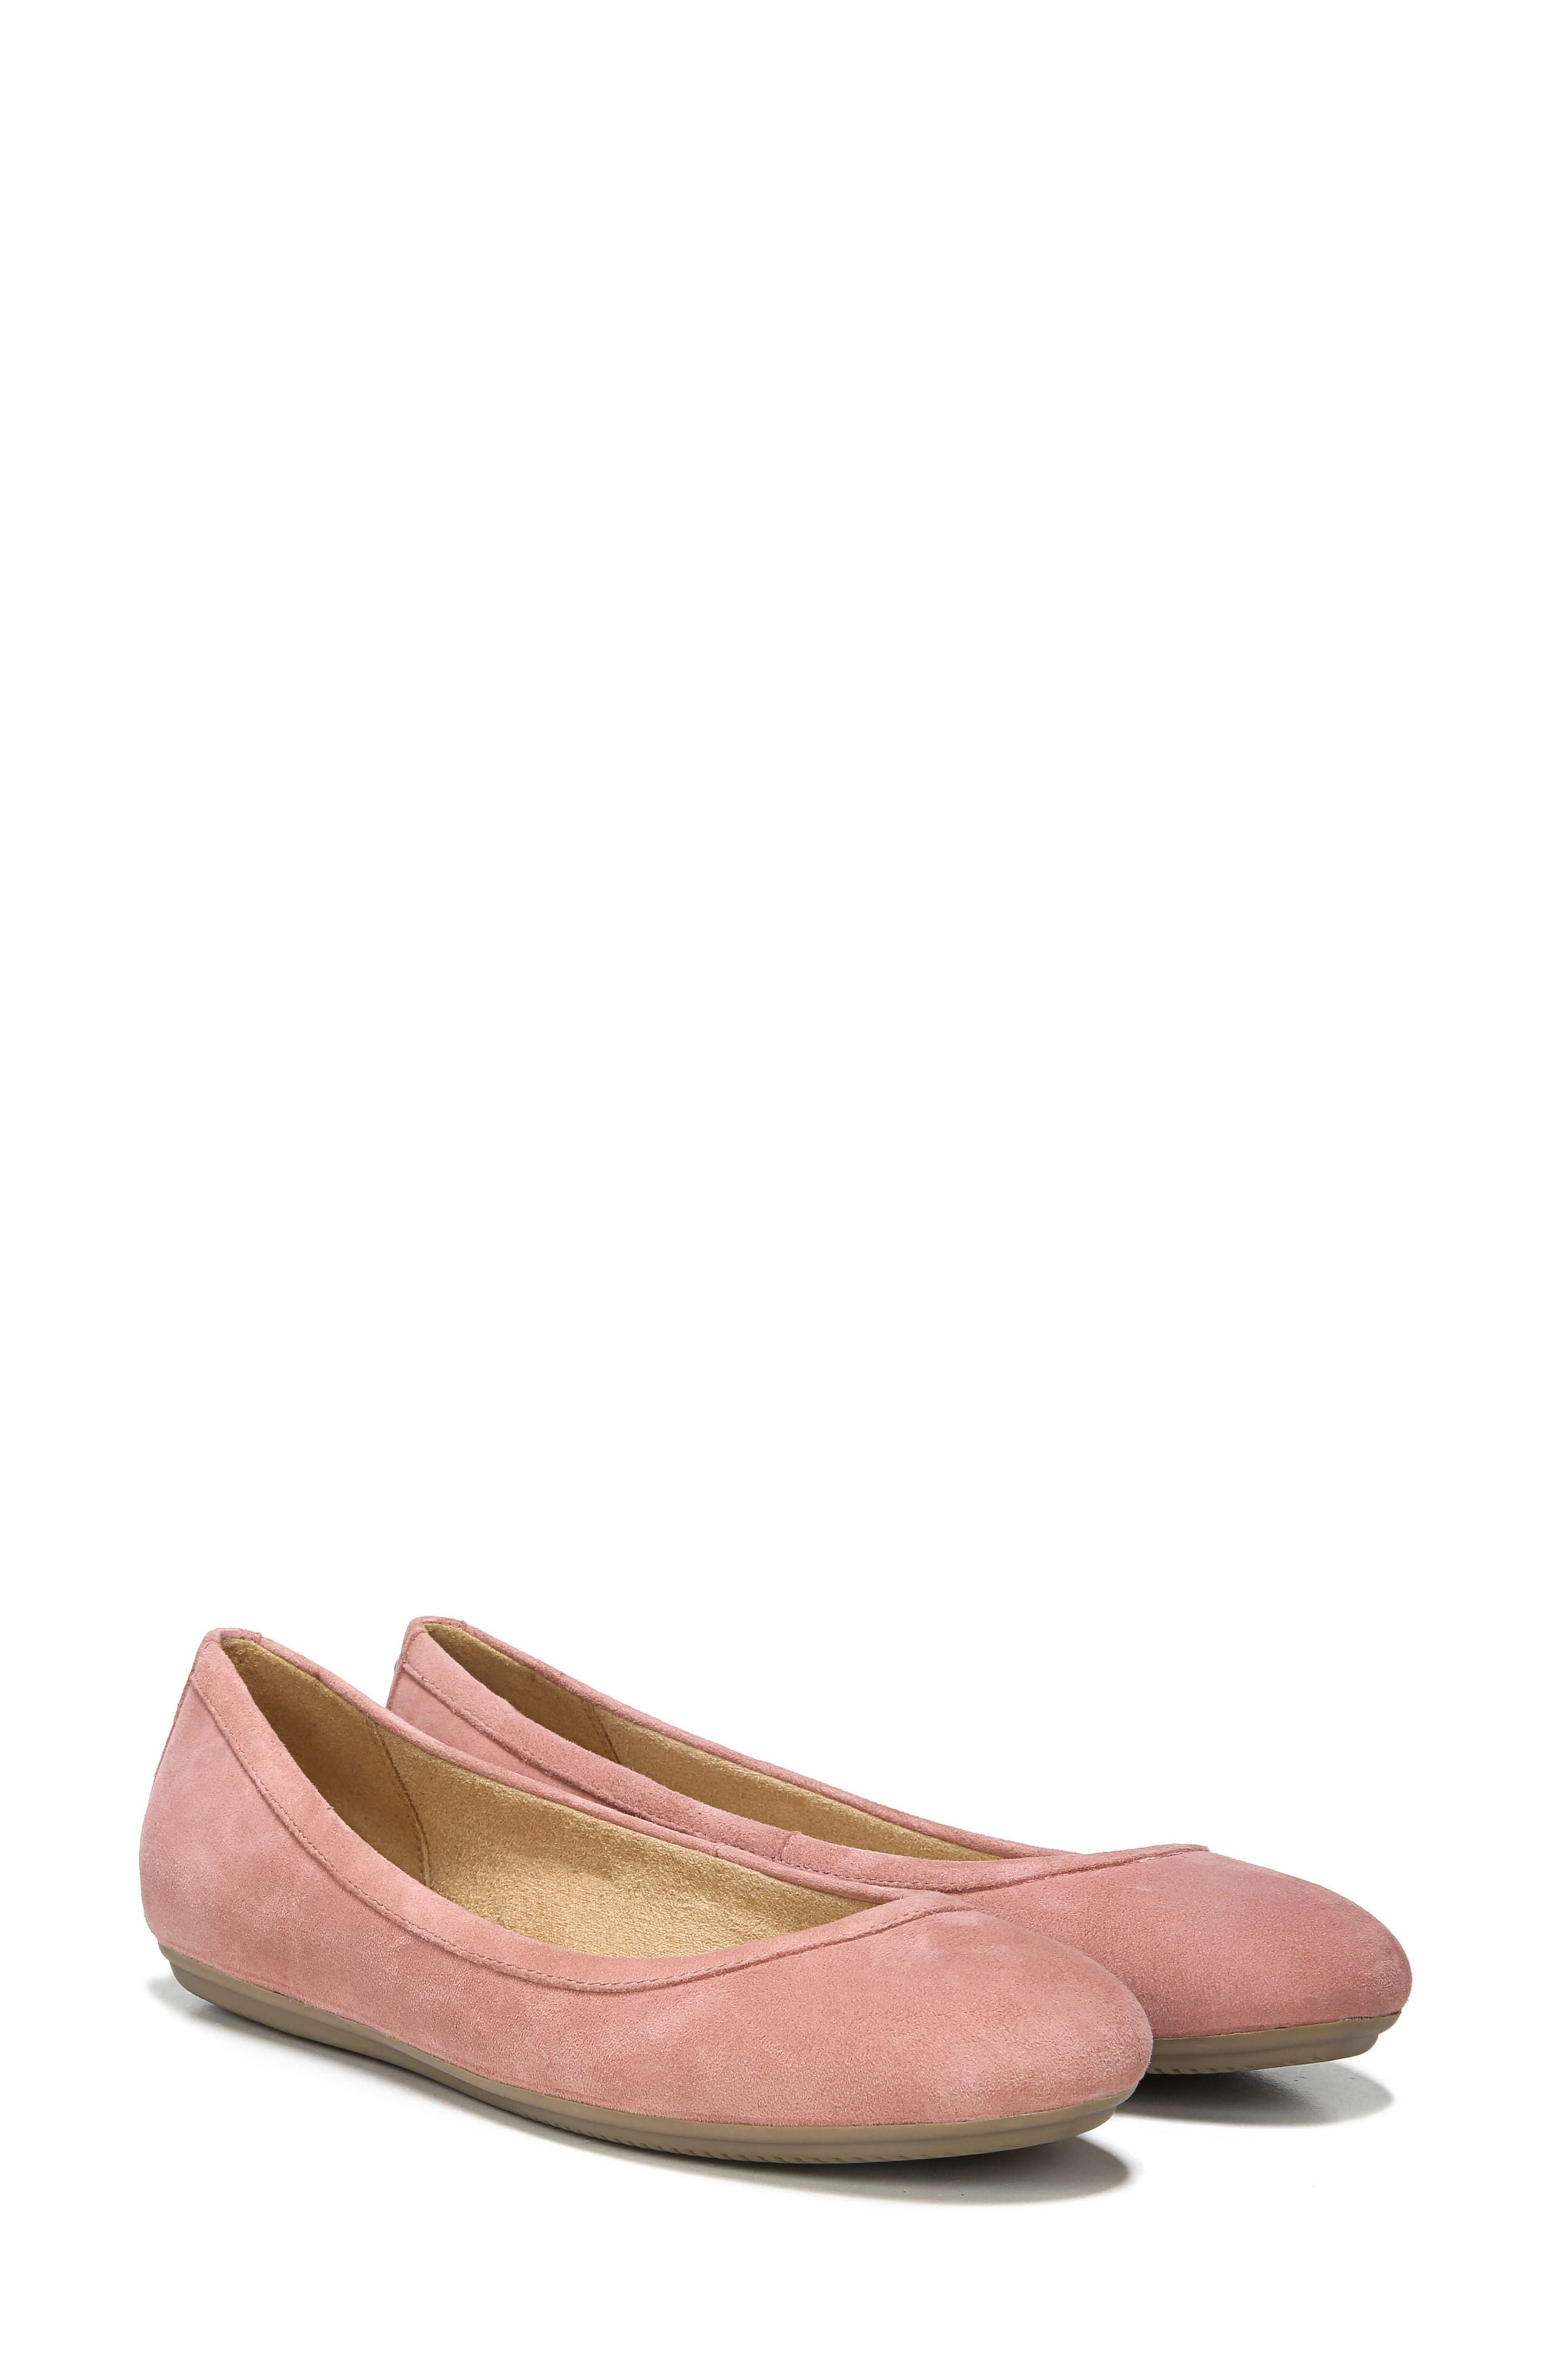 Brittany Ballet Flat,                             Alternate thumbnail 7, color,                             PEONY PINK SUEDE